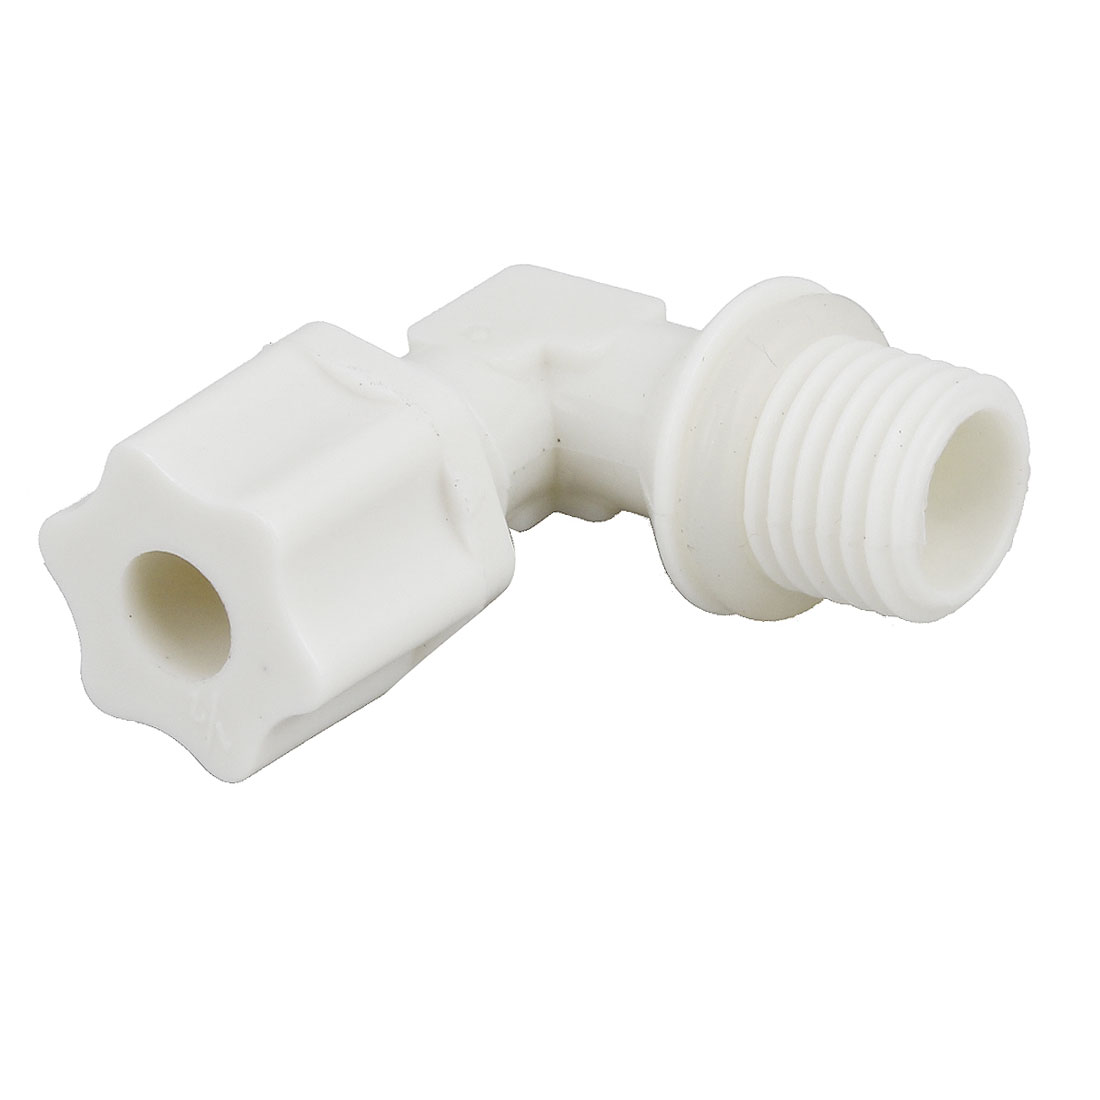 Plastic 1/4PT Male Threaded Right Angle Connector Elbow Fitting w Ring